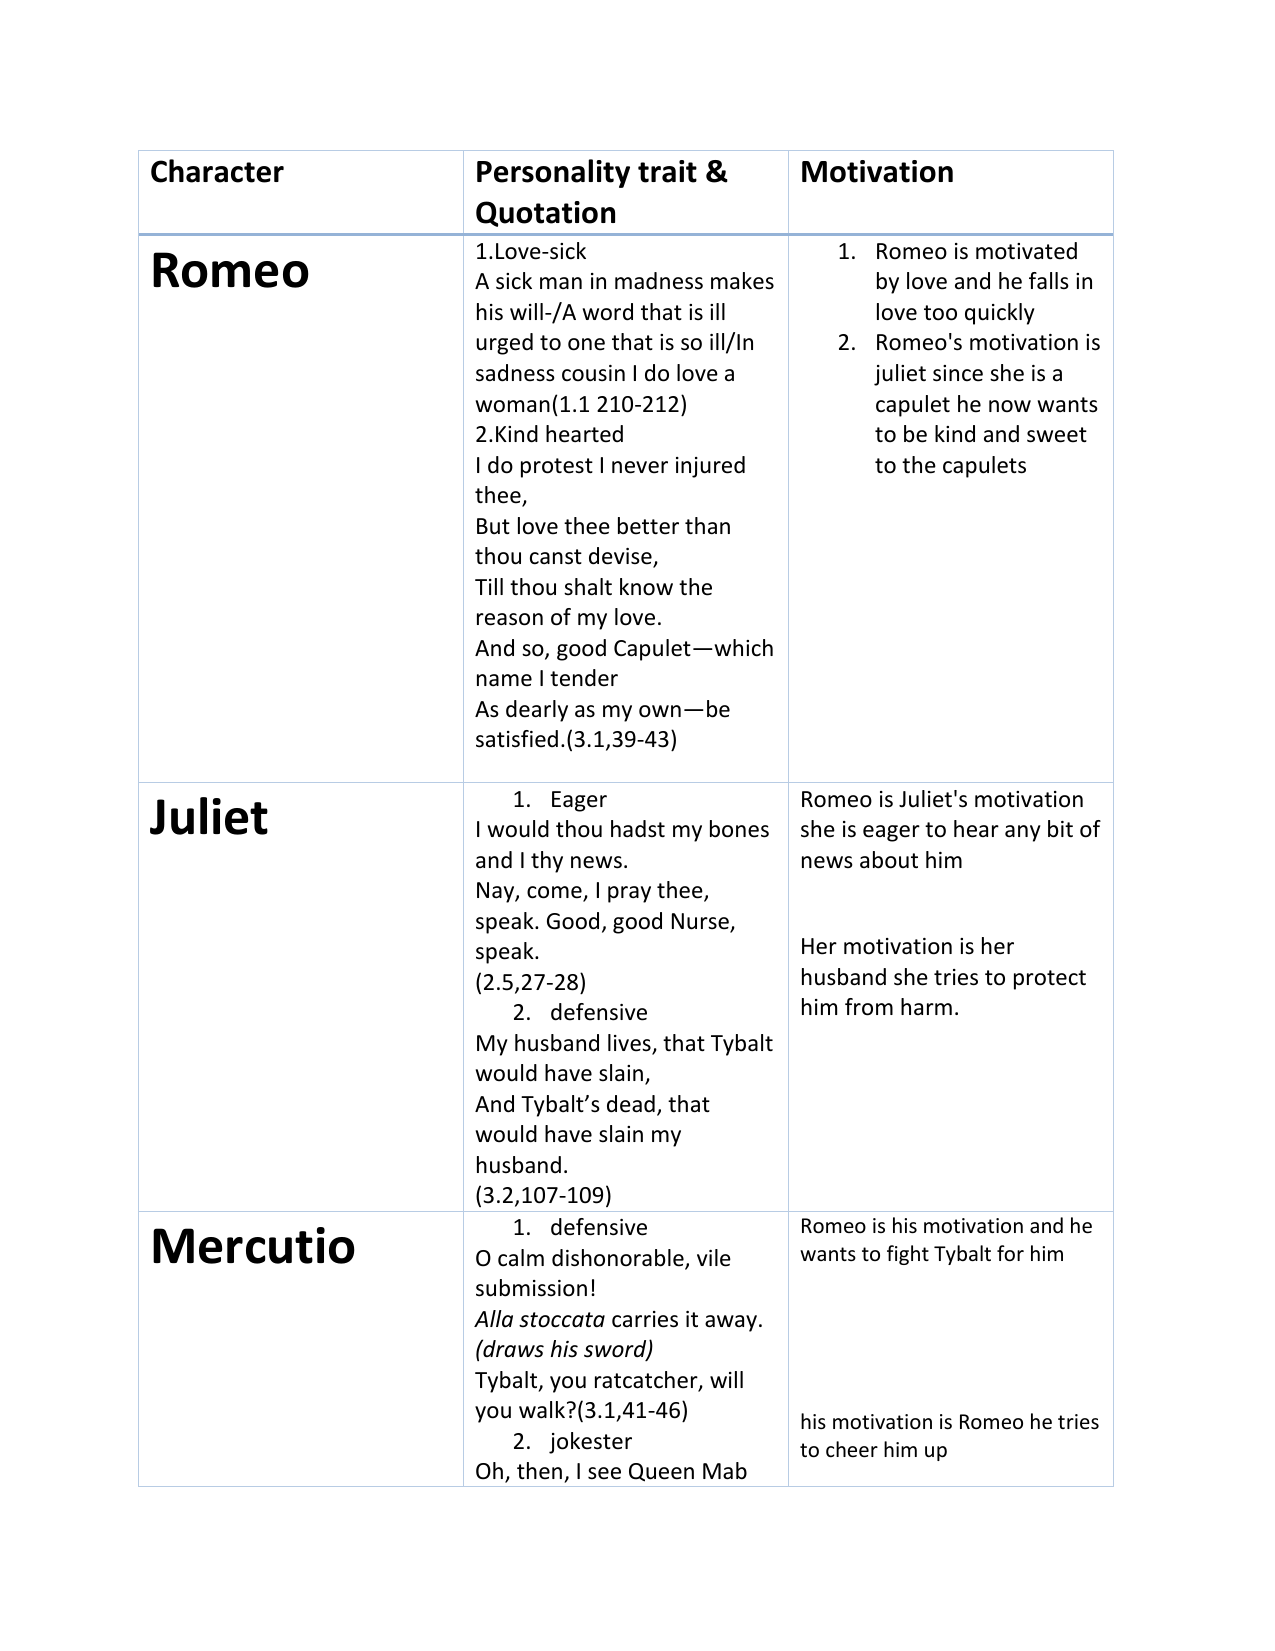 Character Chart For Romeo And Juliet